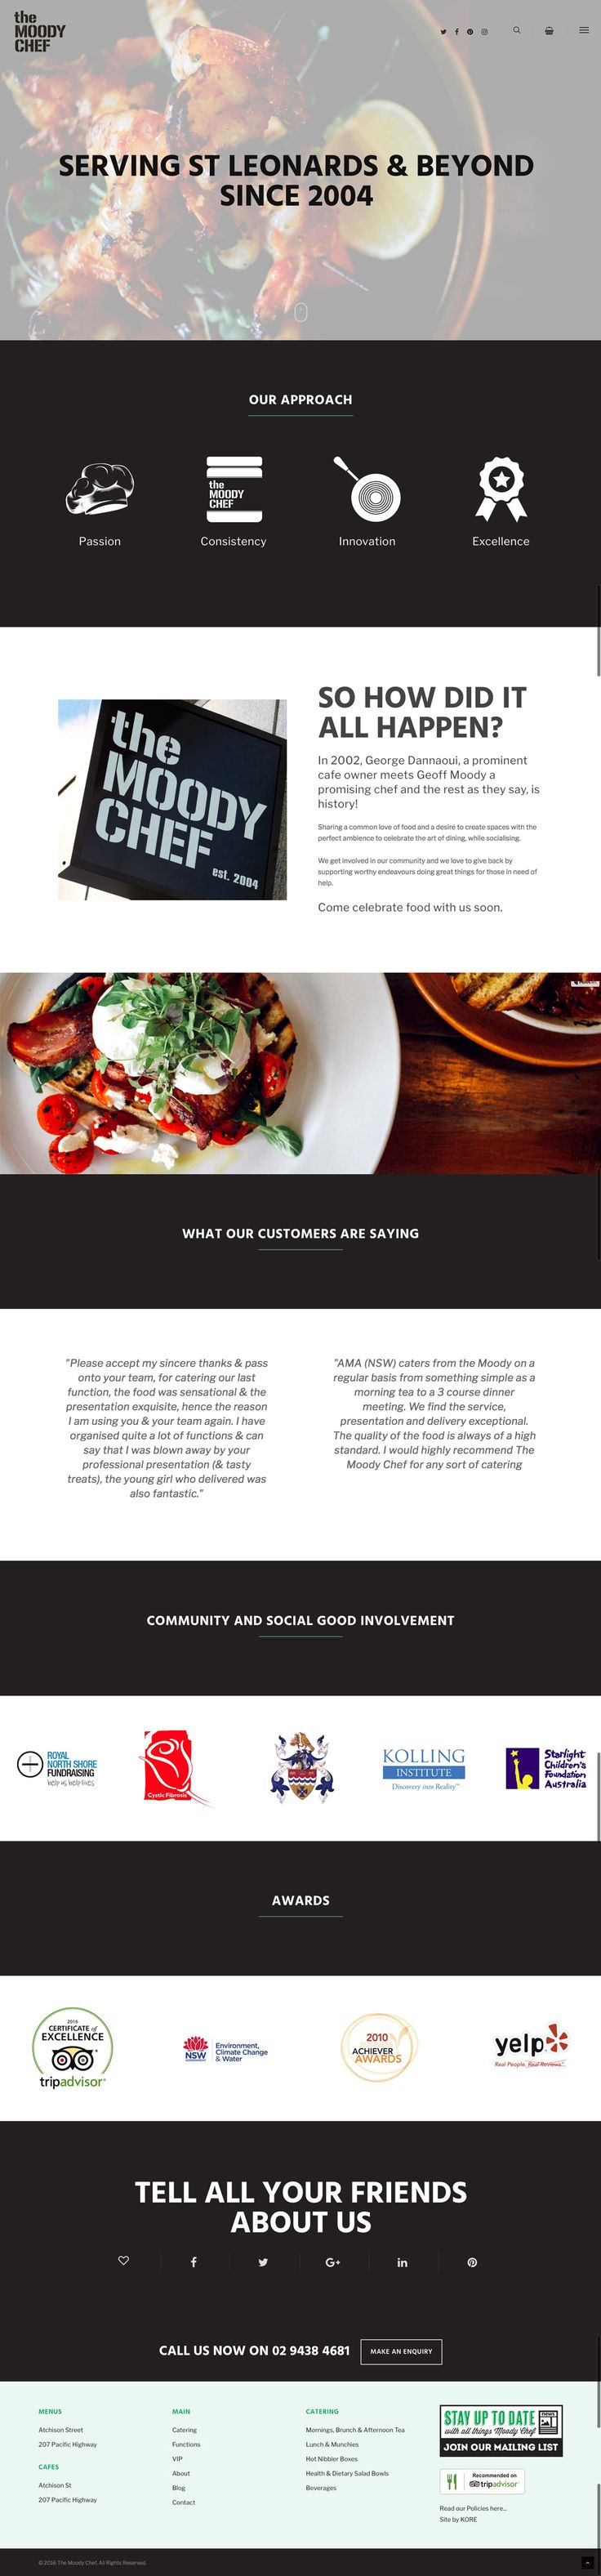 The Moody Chef's new responsive website by KORE (http://kore.digital/). About web page view.